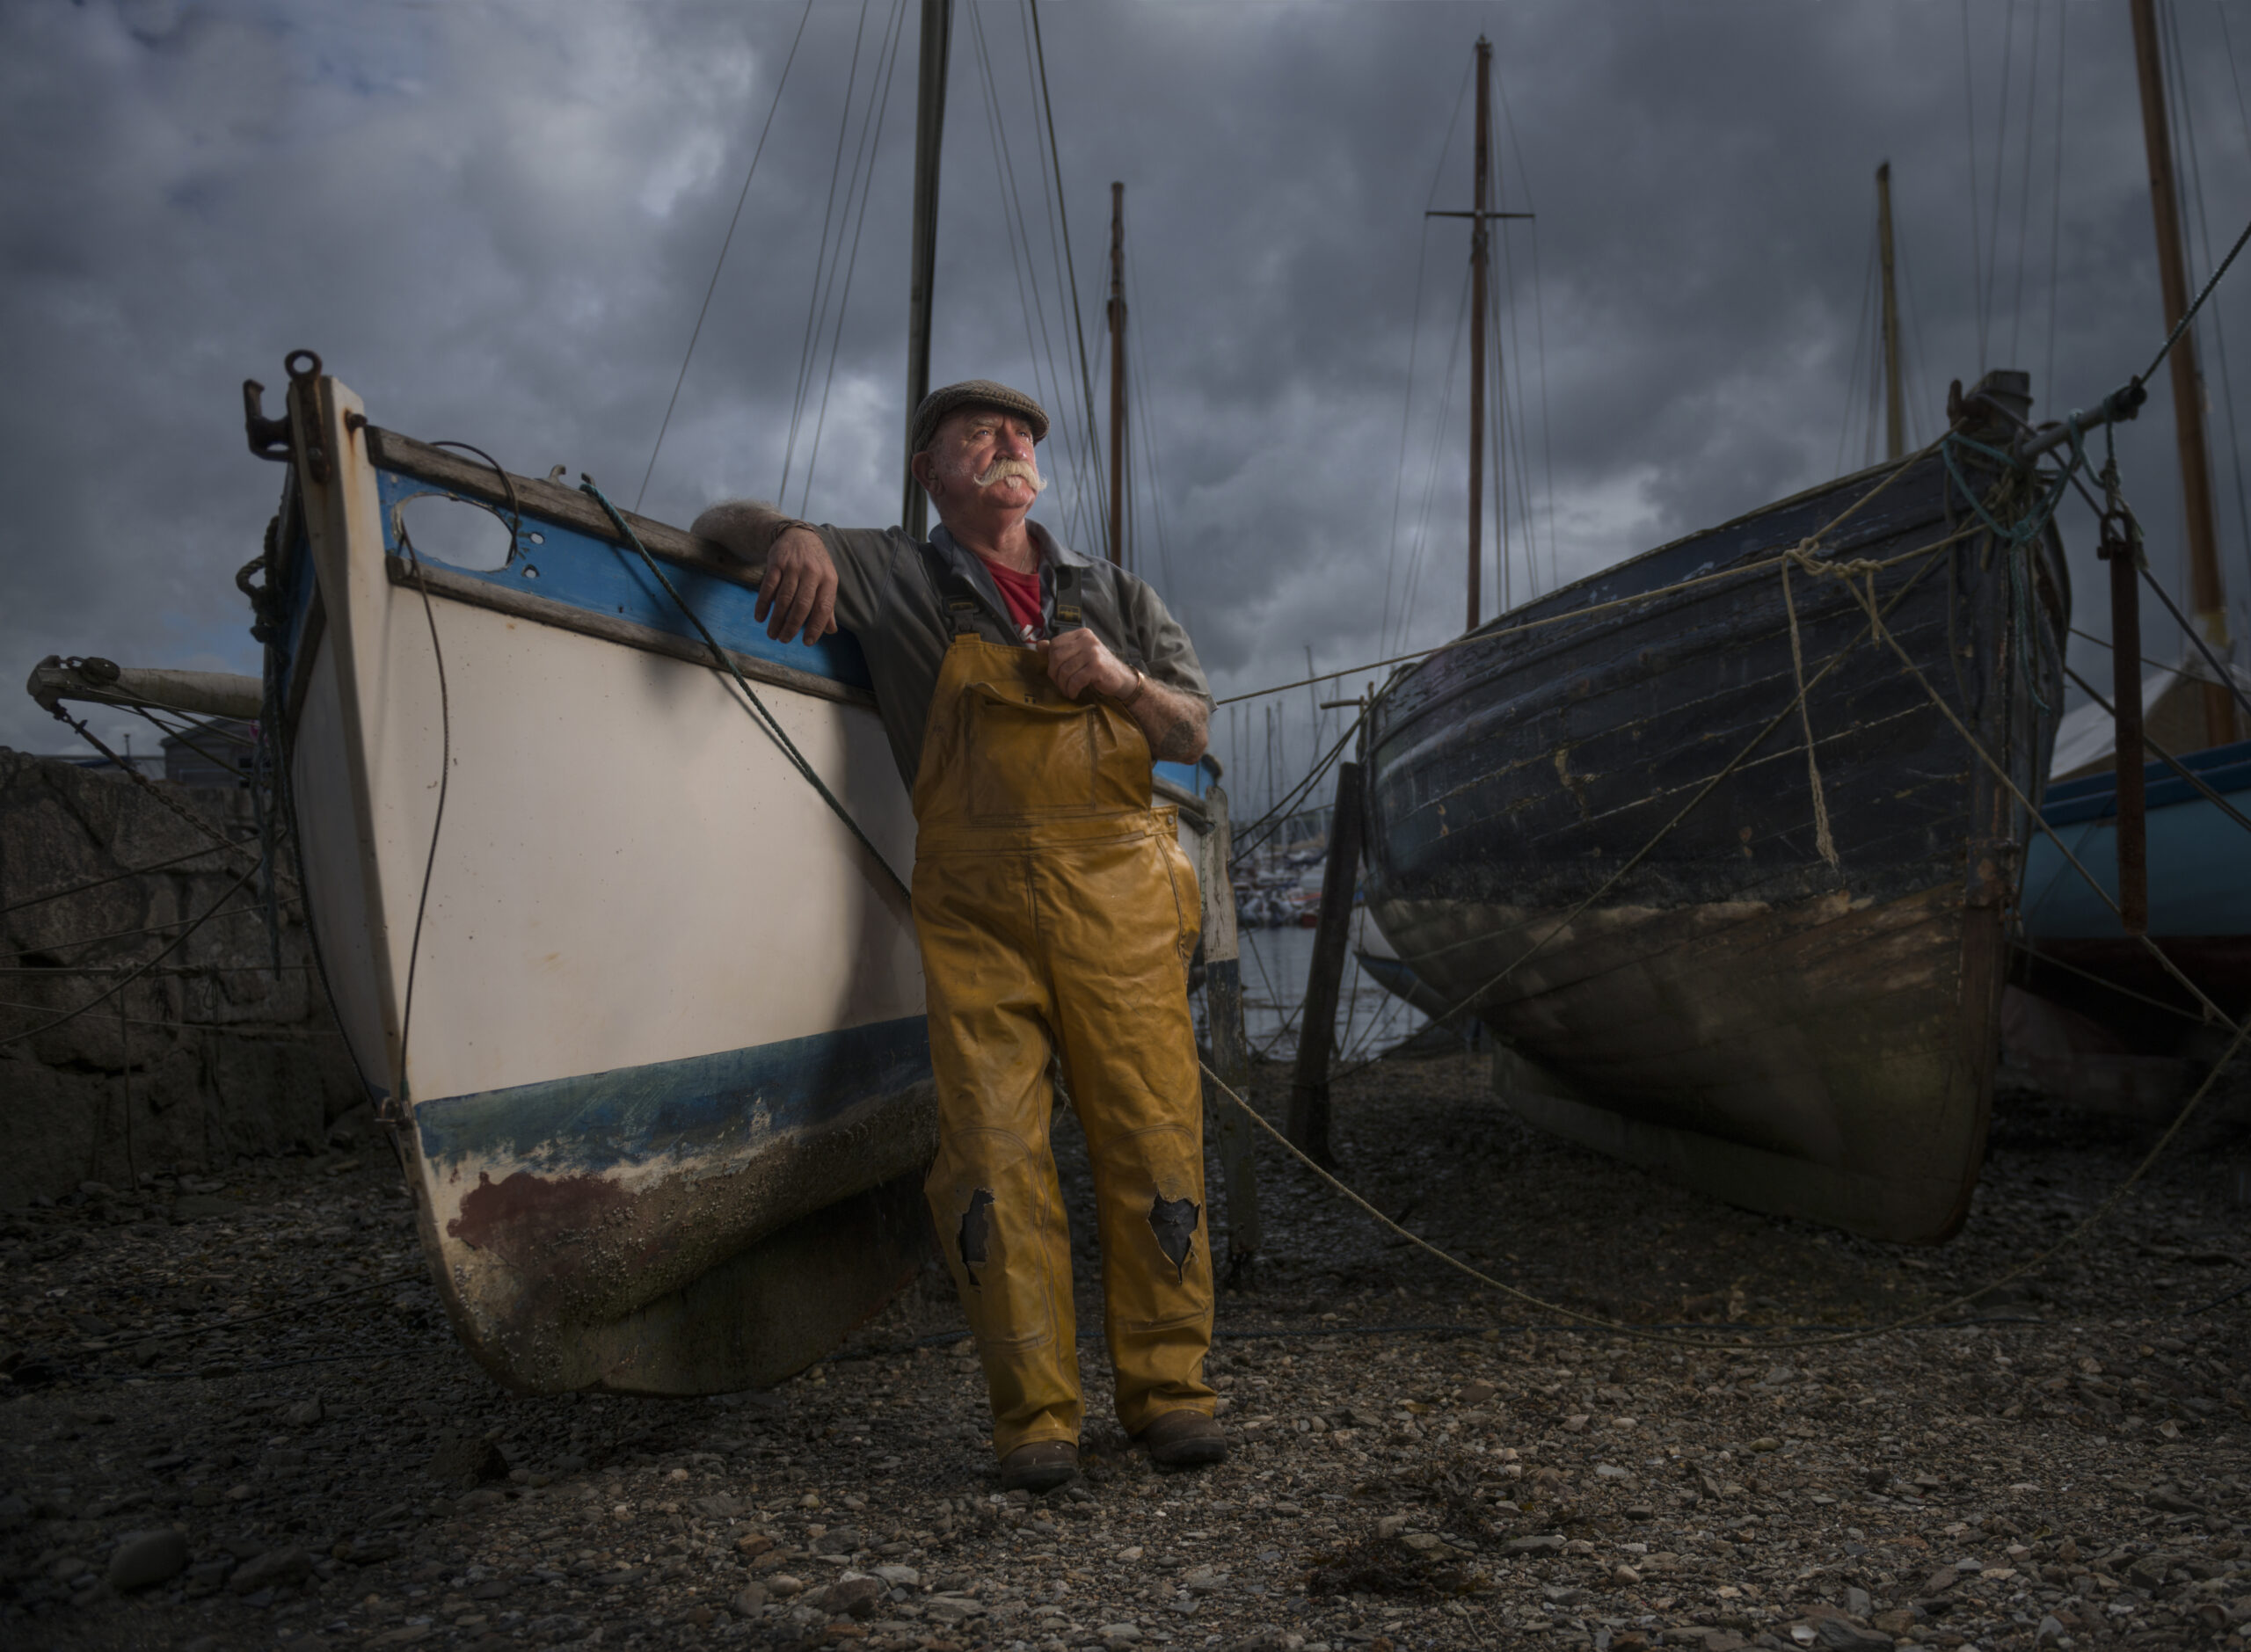 Oyster fisherman in cornwall standing proud against his old boat